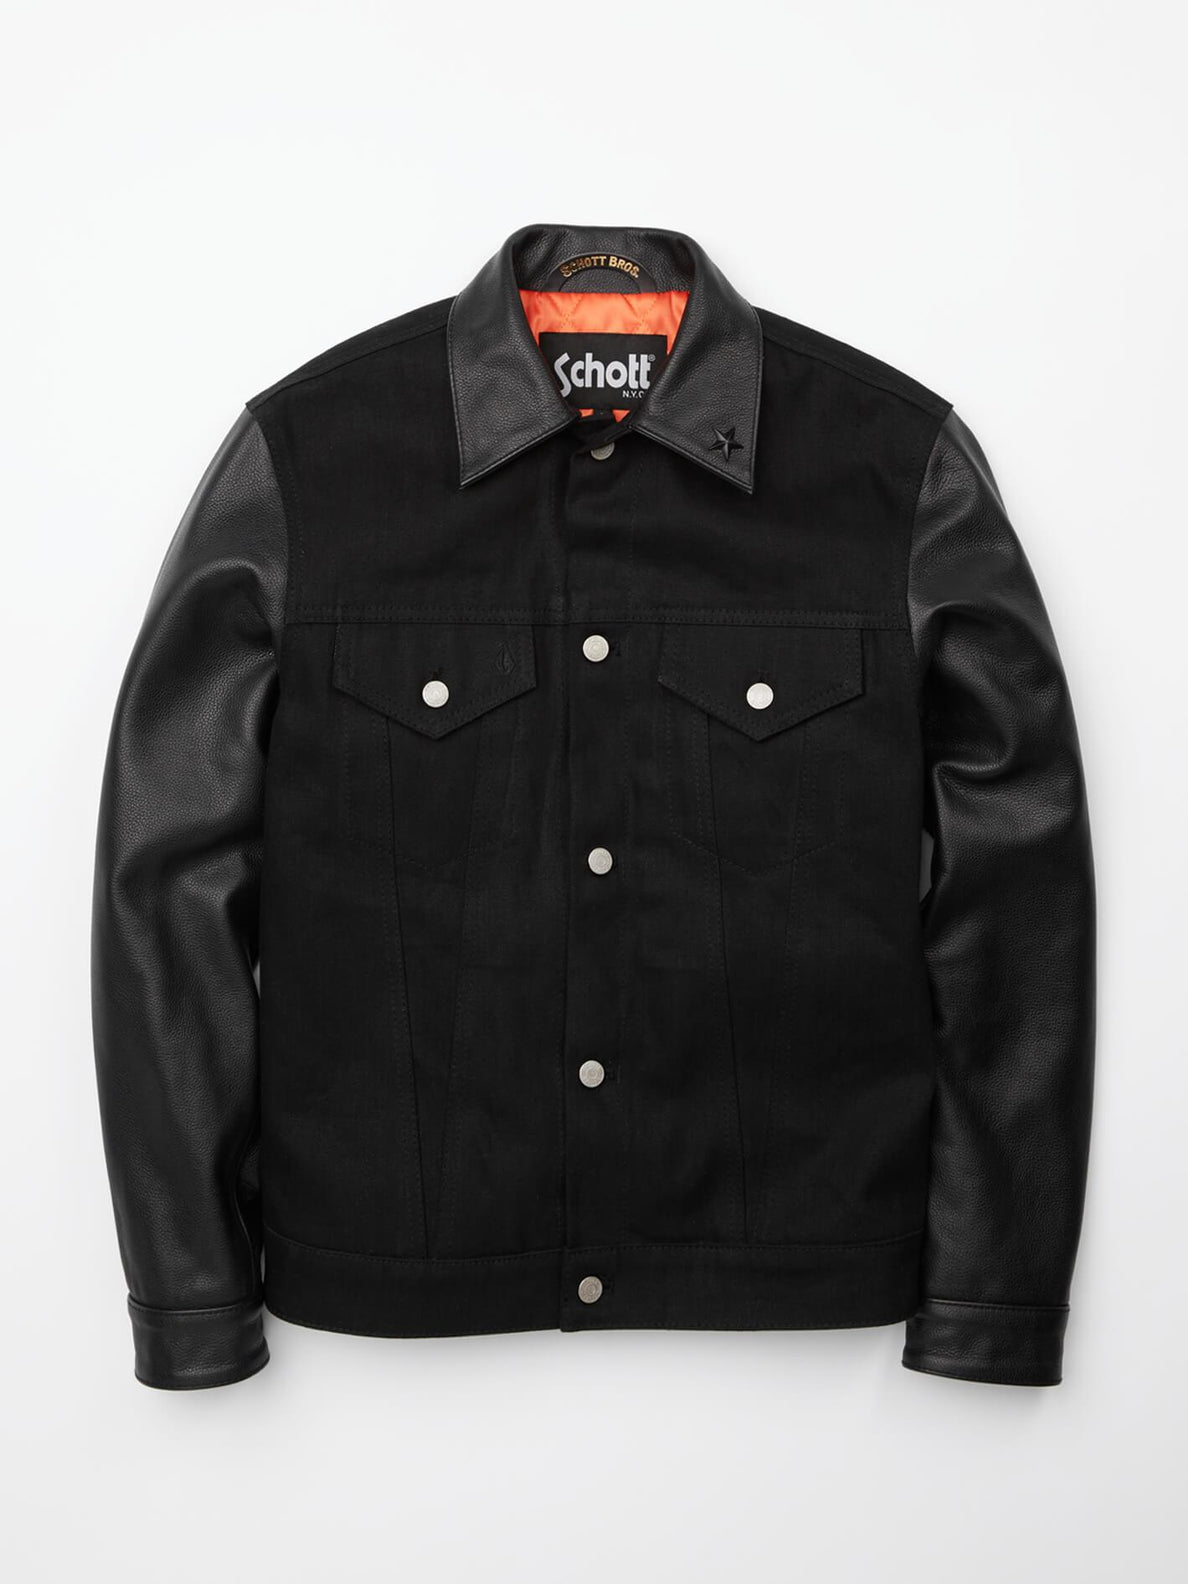 Volcom X Schott Jacket In Black, Front View